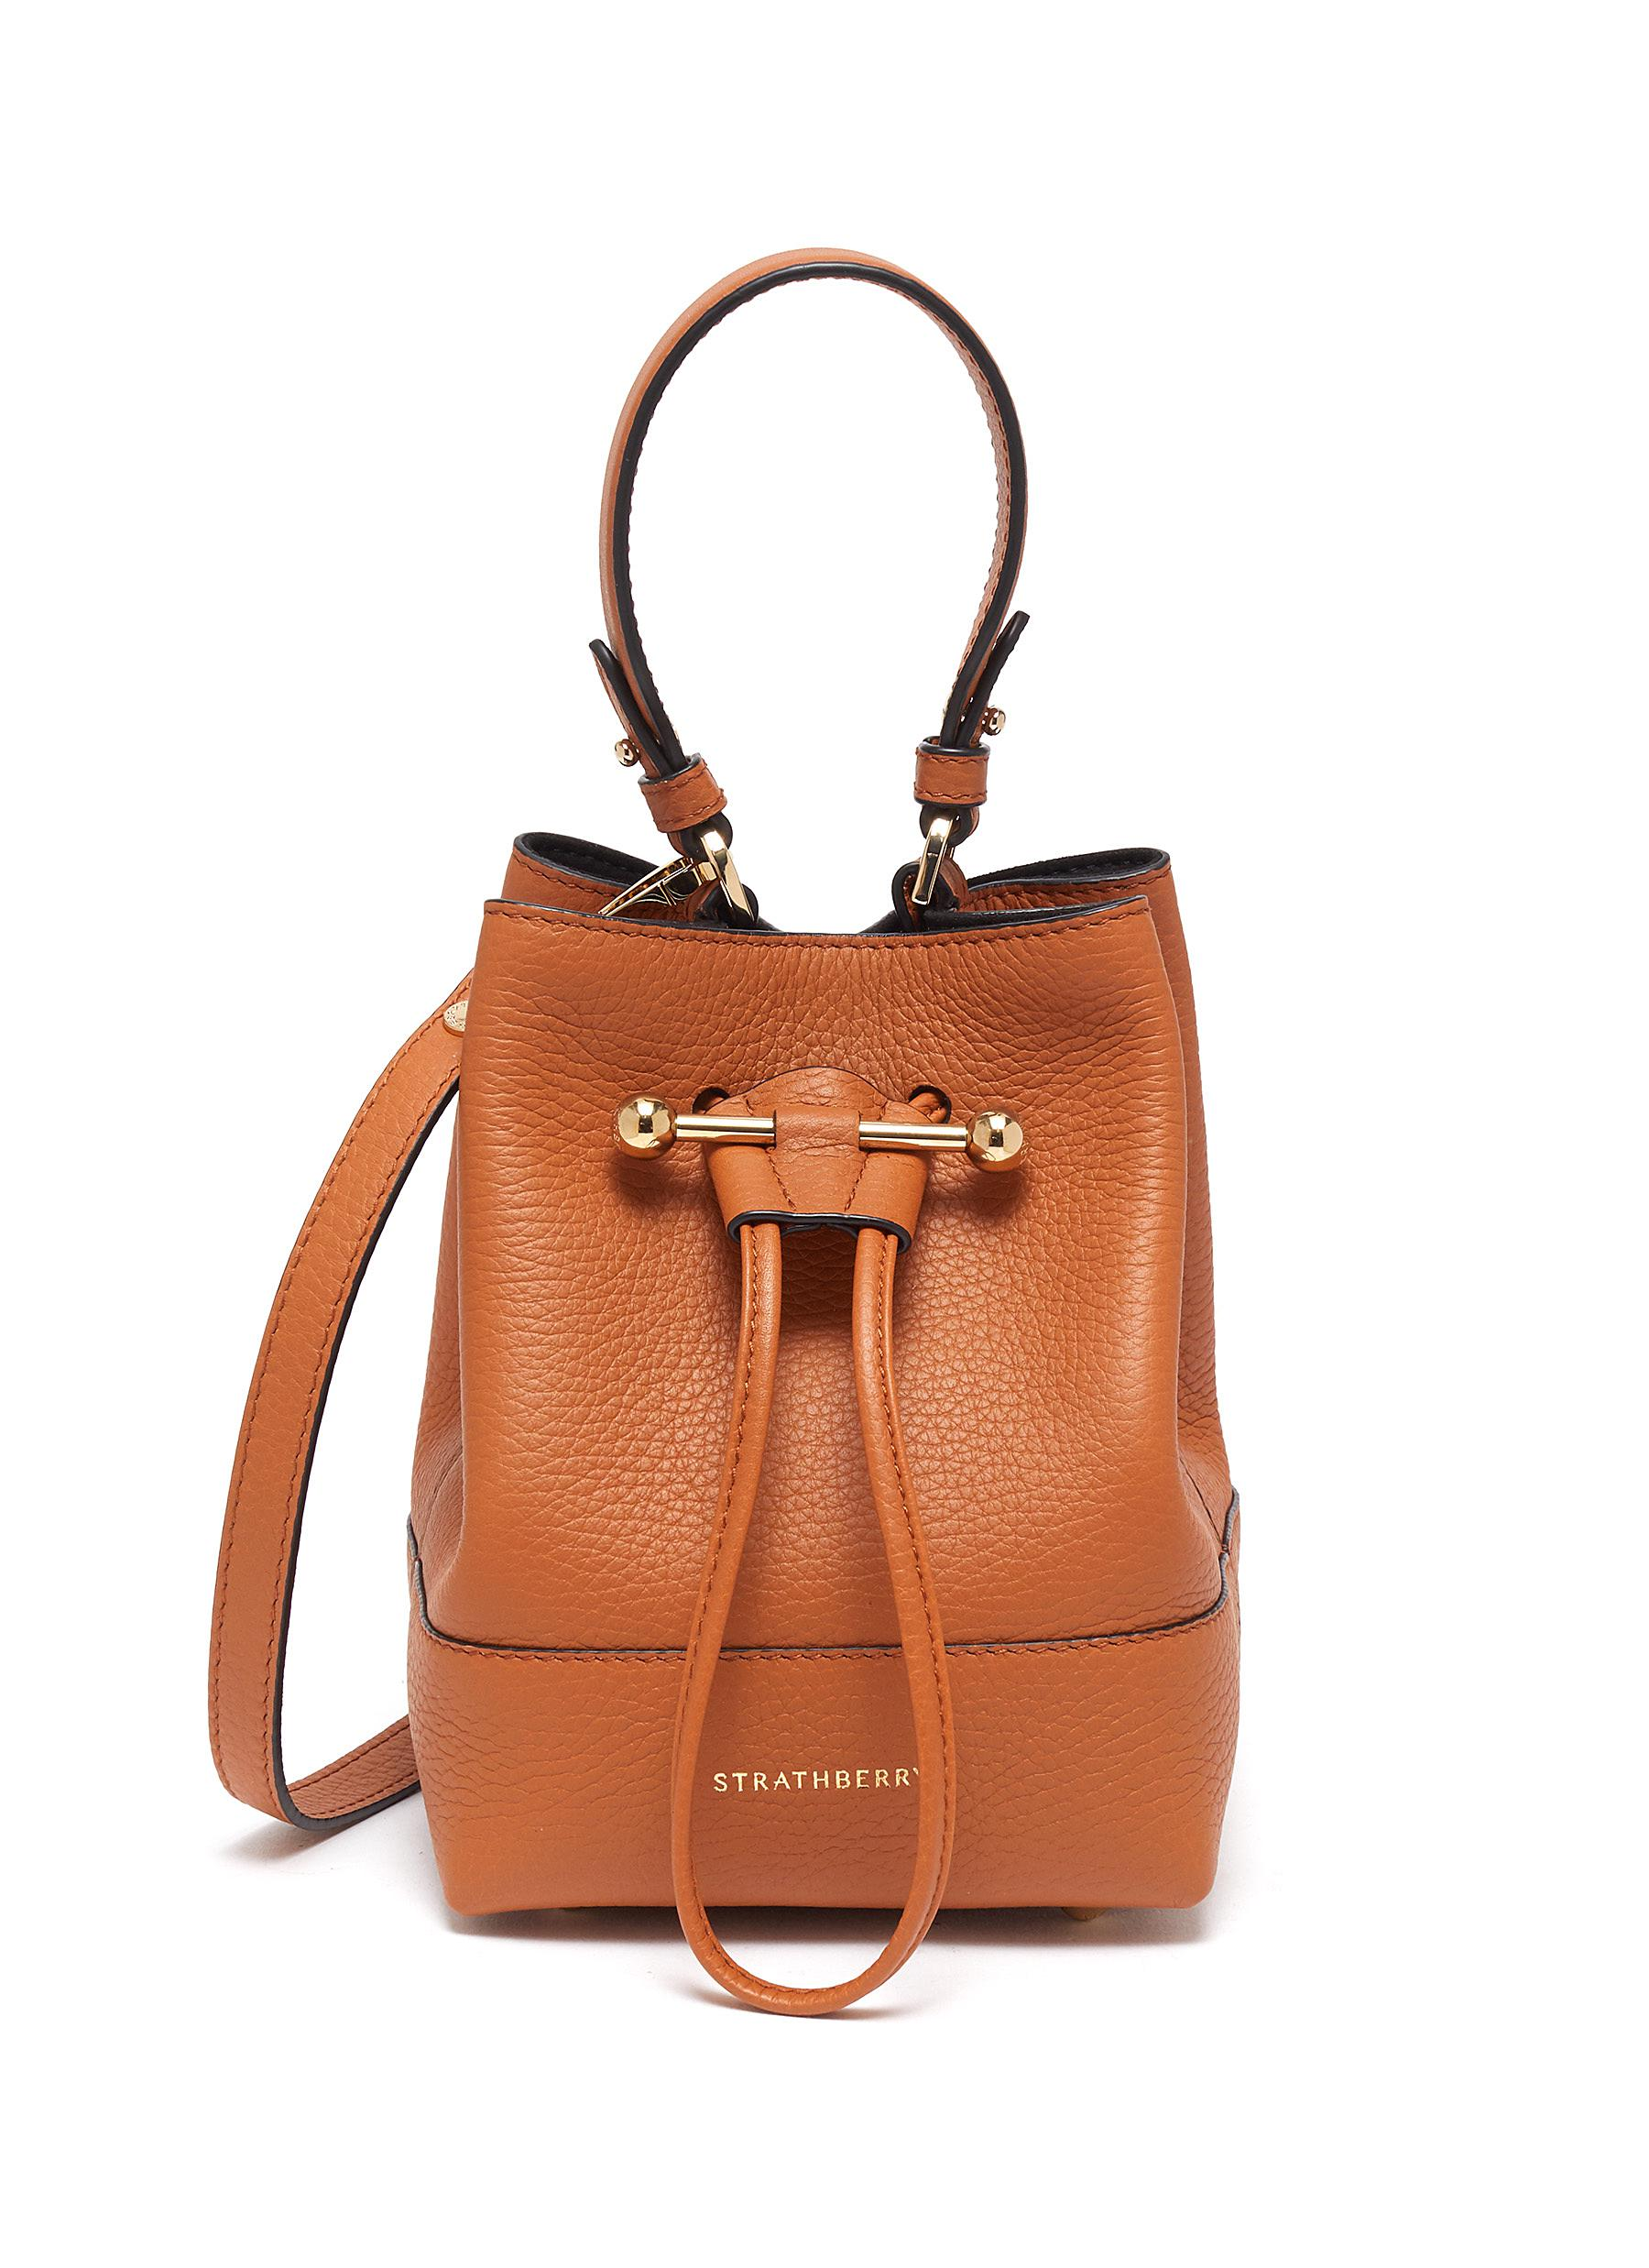 Strathberry LANA OSETTE' TOP HANDLE DRAWSTRING LEATHER BUCKET BAG